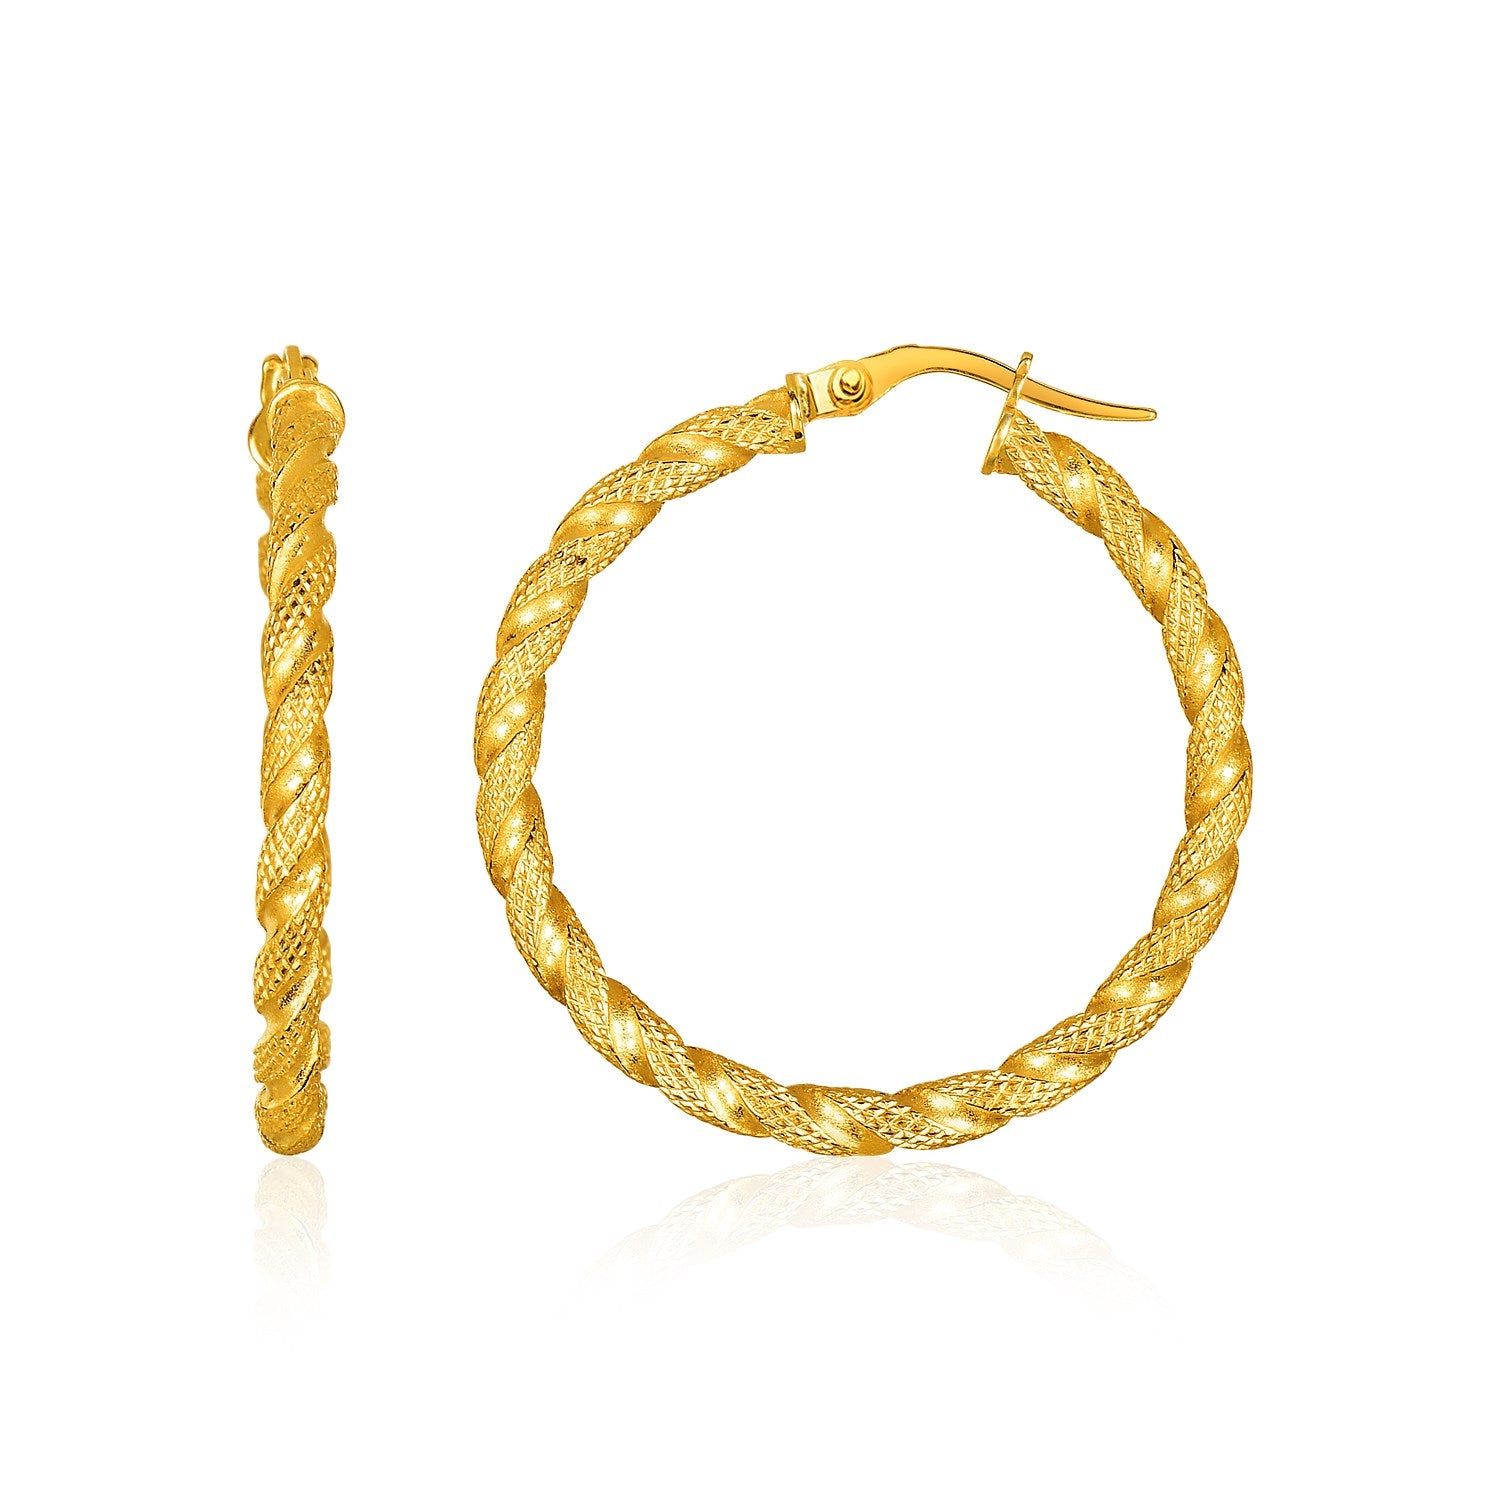 14K Yellow Gold Rope Textured Hoop Earrings